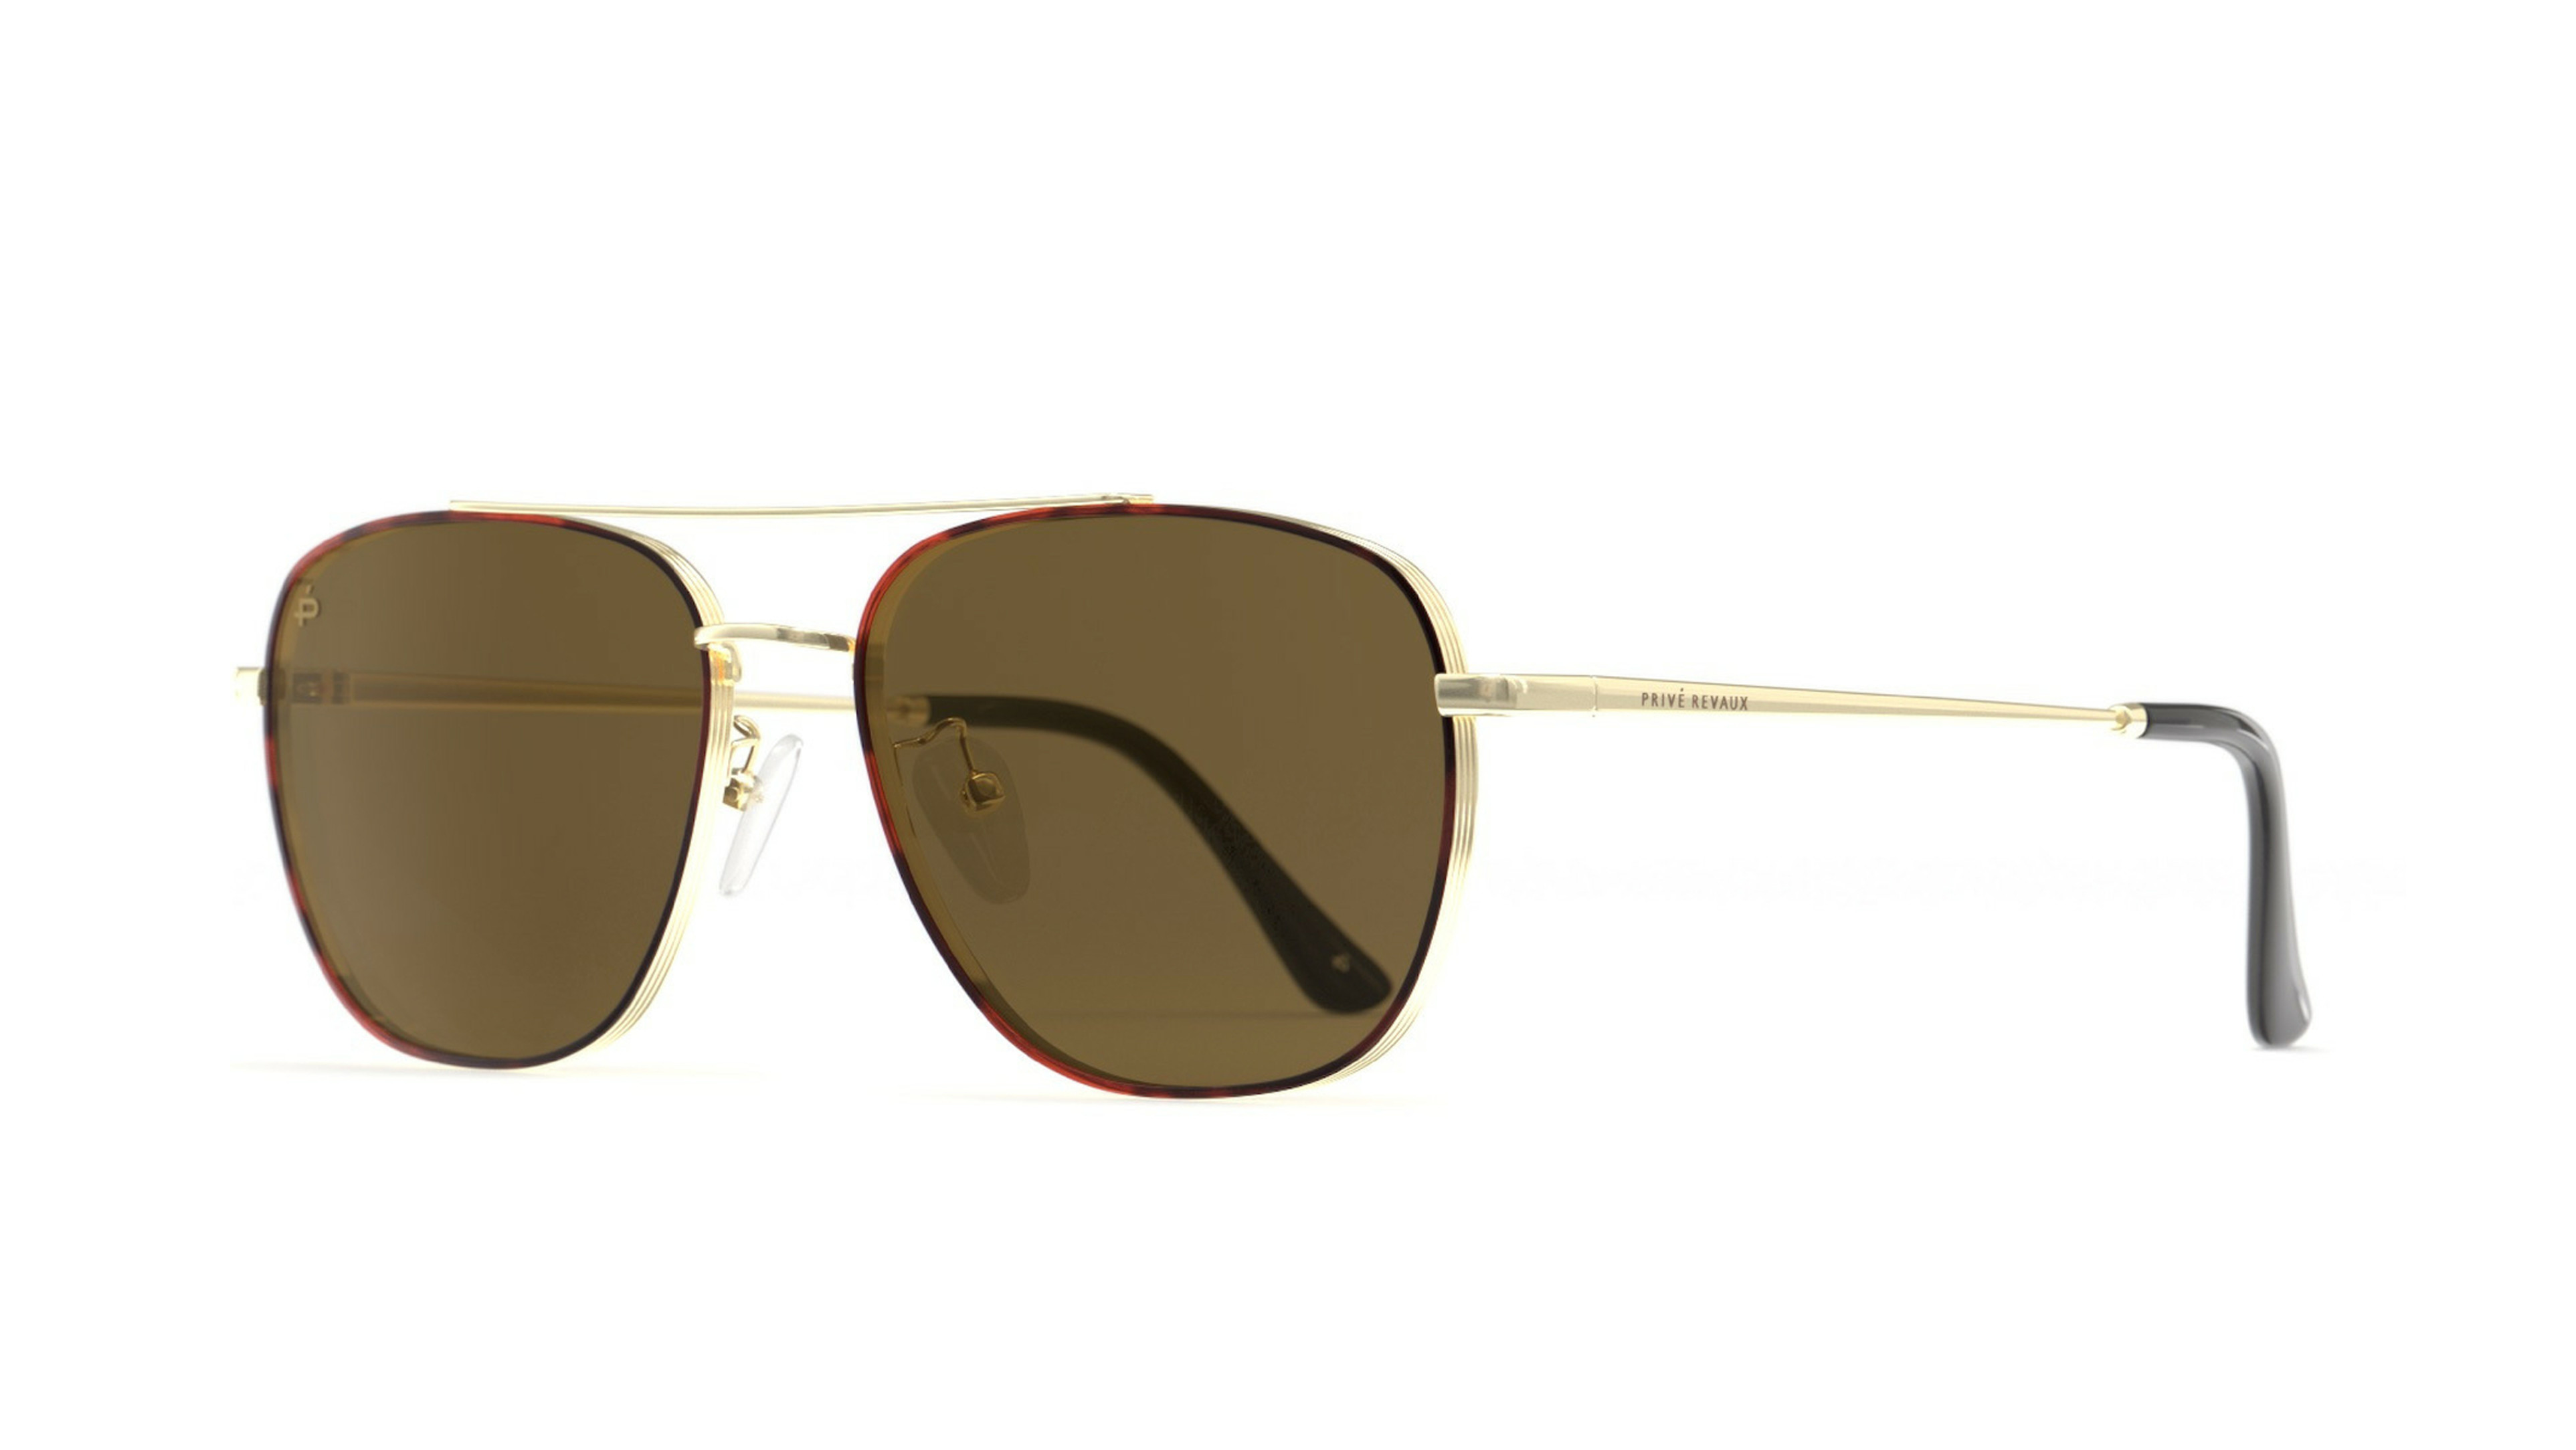 0810036102032-angle-prive-revaux-sonnenbrille-prive-revaux-the-floridian-goldbrown